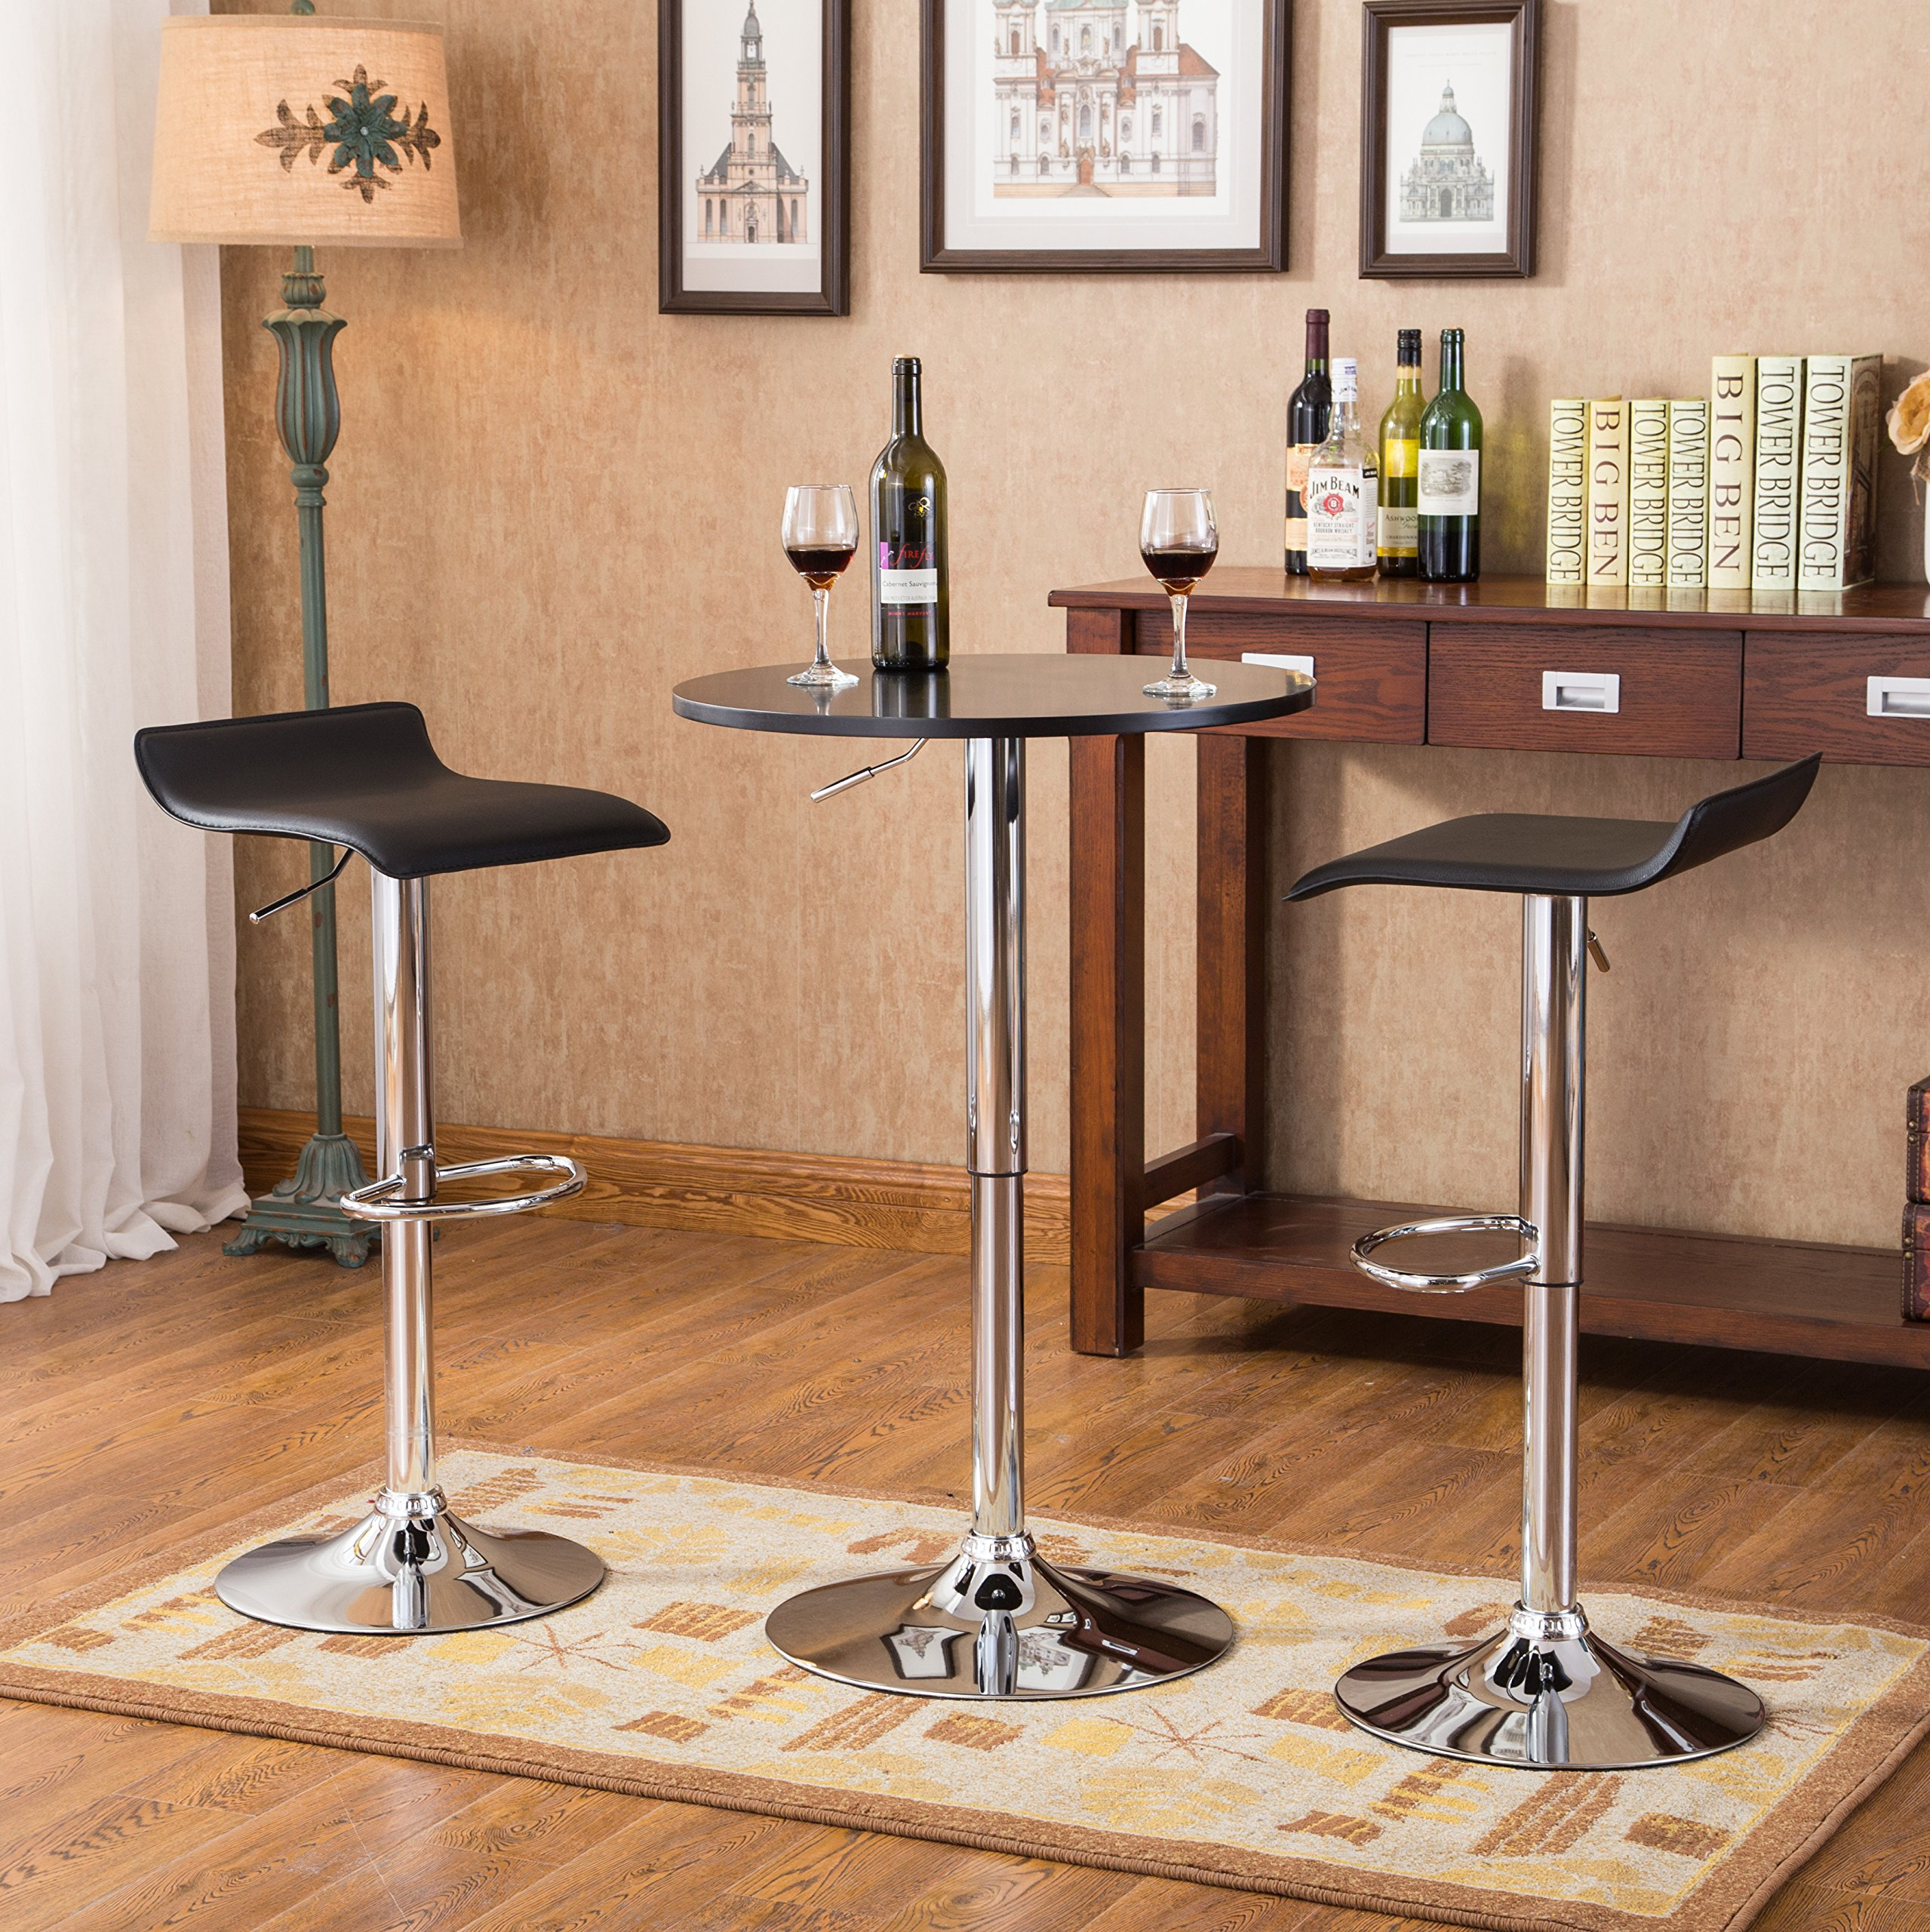 Incredible Buy Roundhill Solid Wood Swivel Bar Stools With Back 24 Theyellowbook Wood Chair Design Ideas Theyellowbookinfo